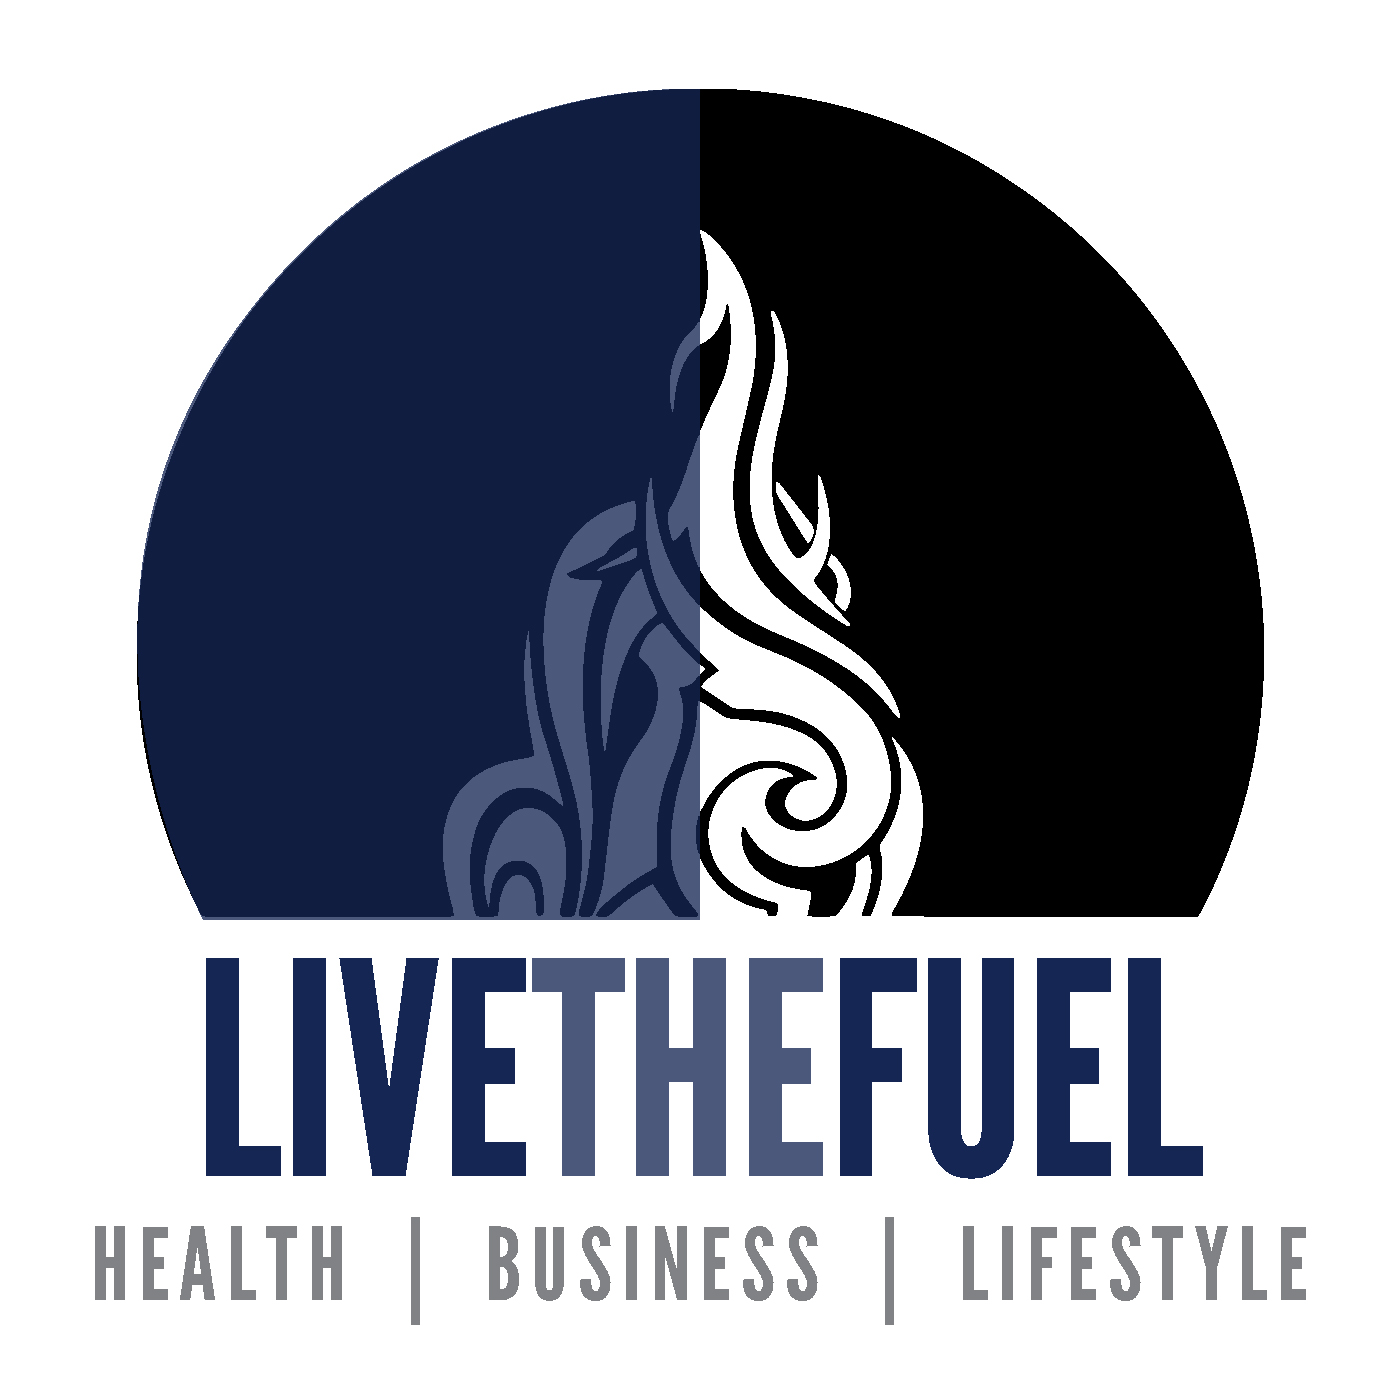 LIVETHEFUEL - Health, Business, Lifestyle